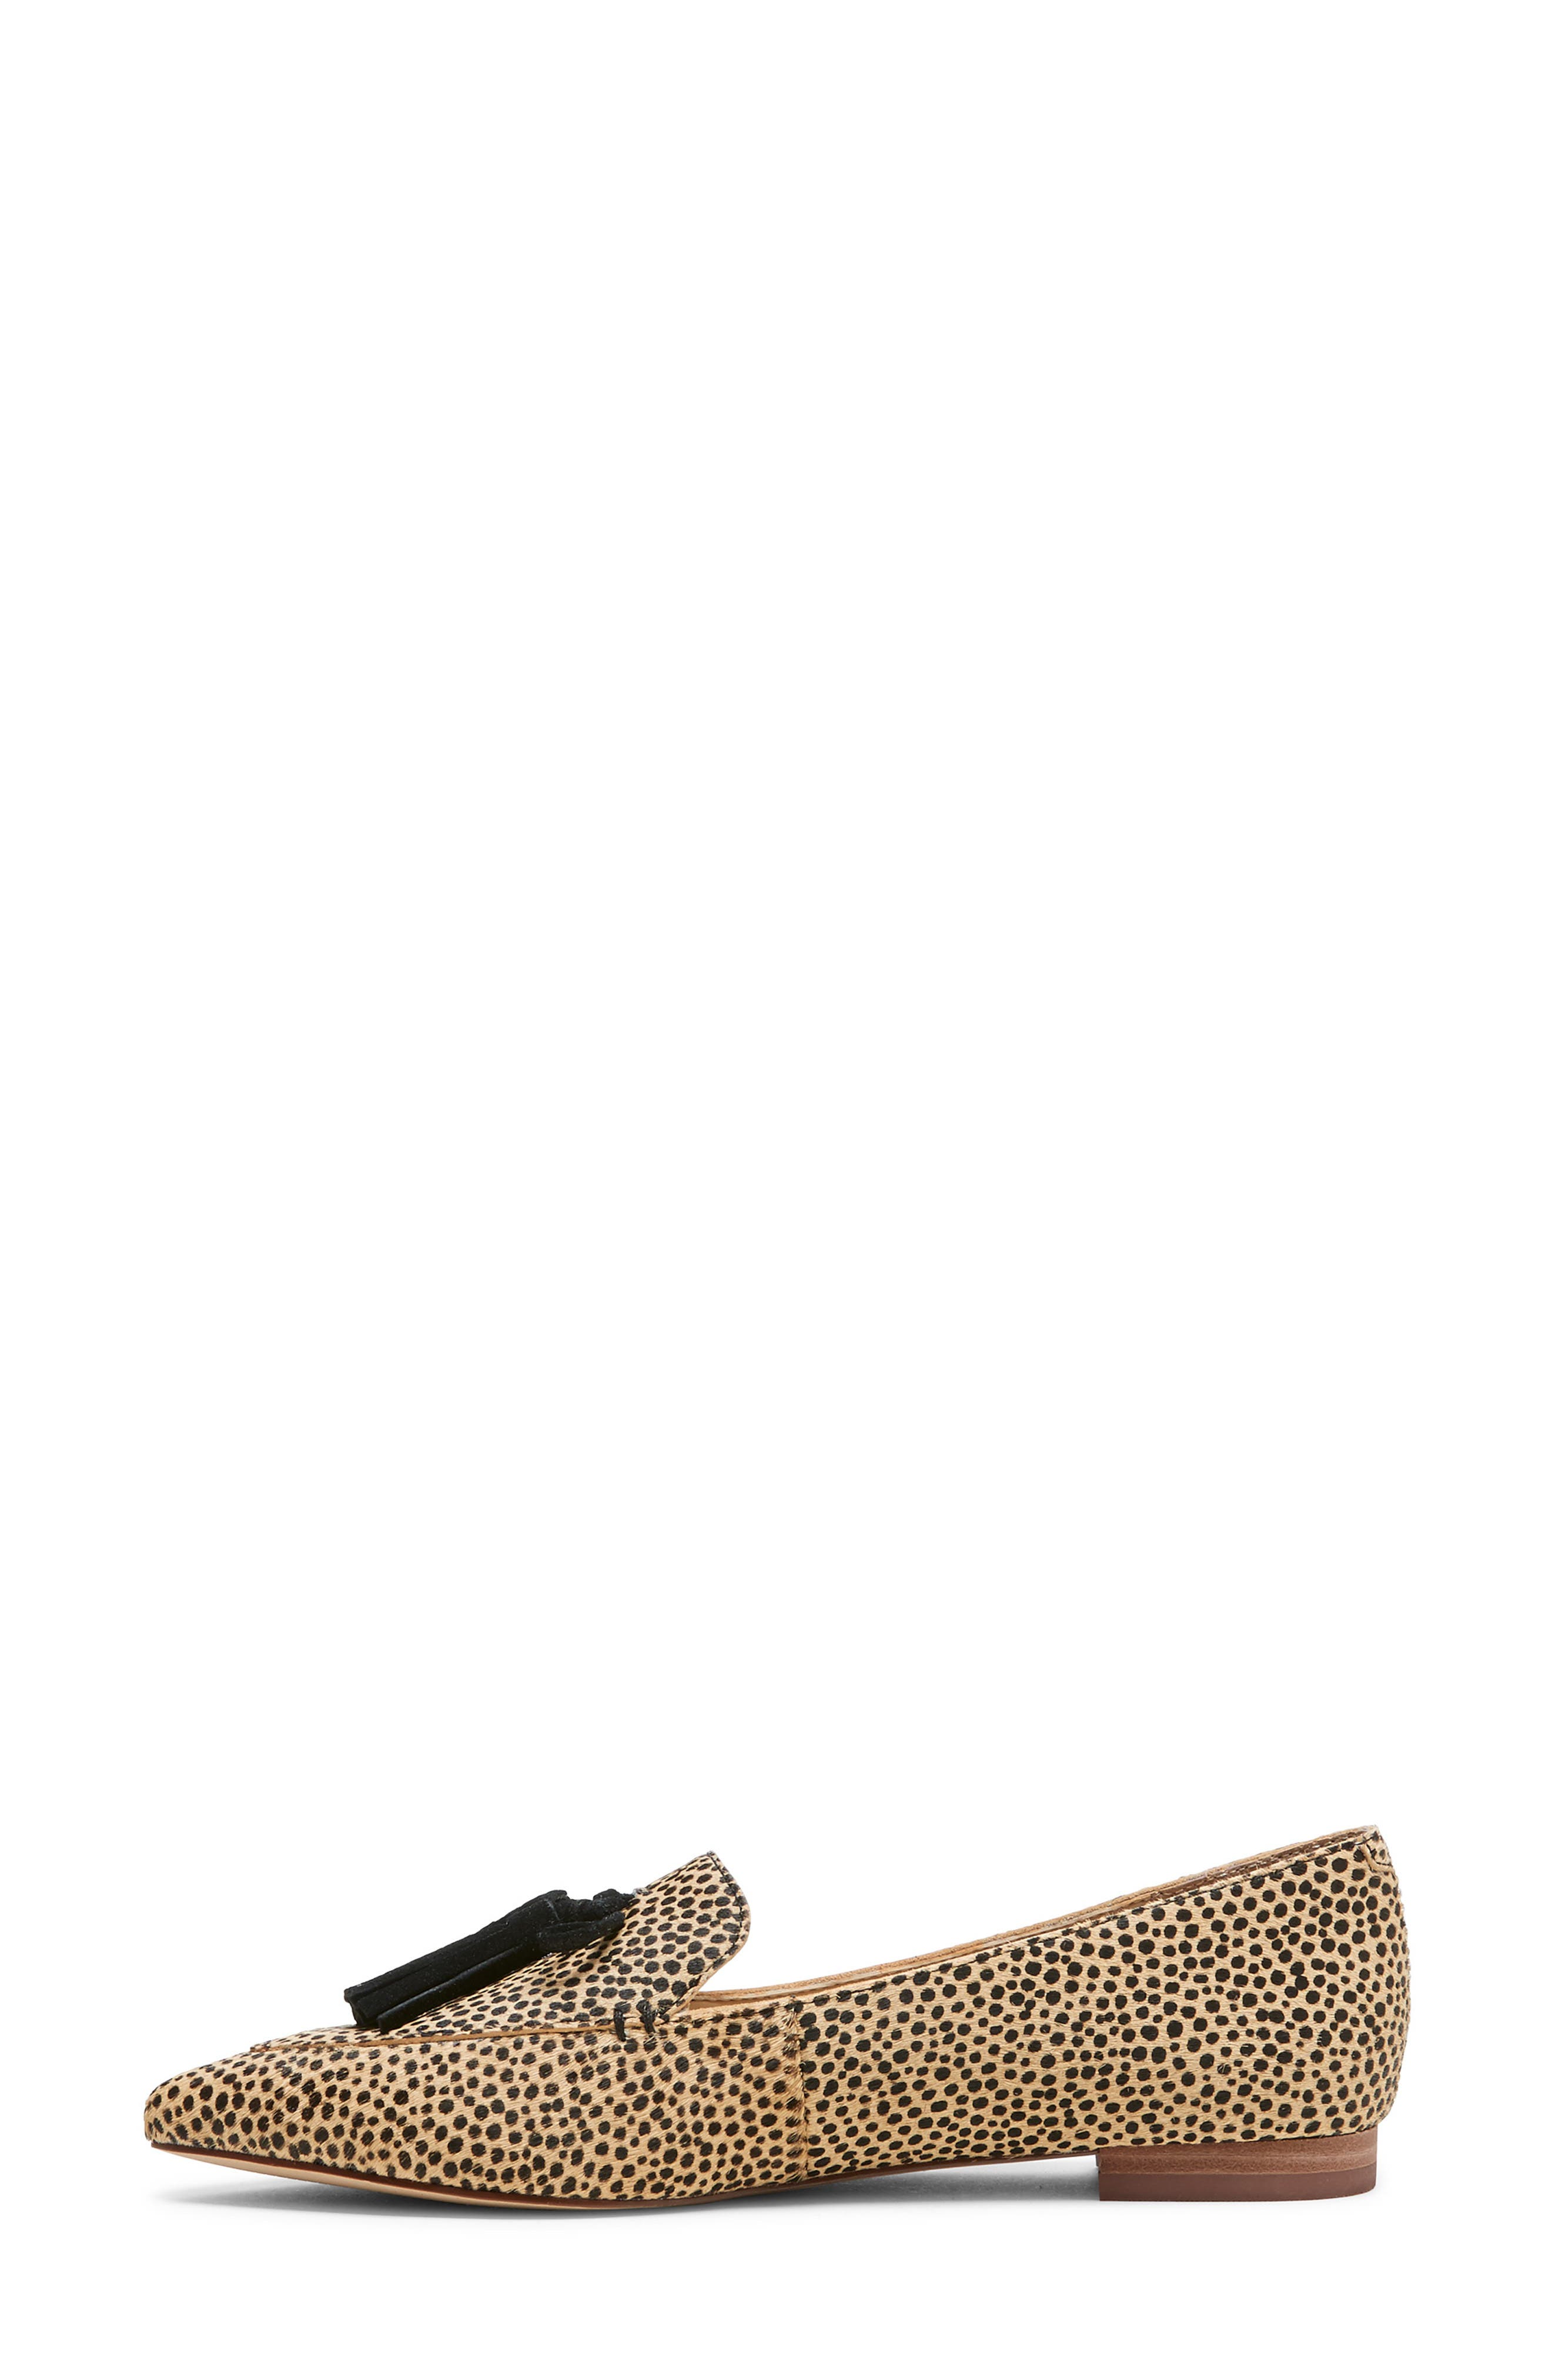 SOLE SOCIETY, Hadlee Loafer, Alternate thumbnail 5, color, DOTTED CALF HAIR